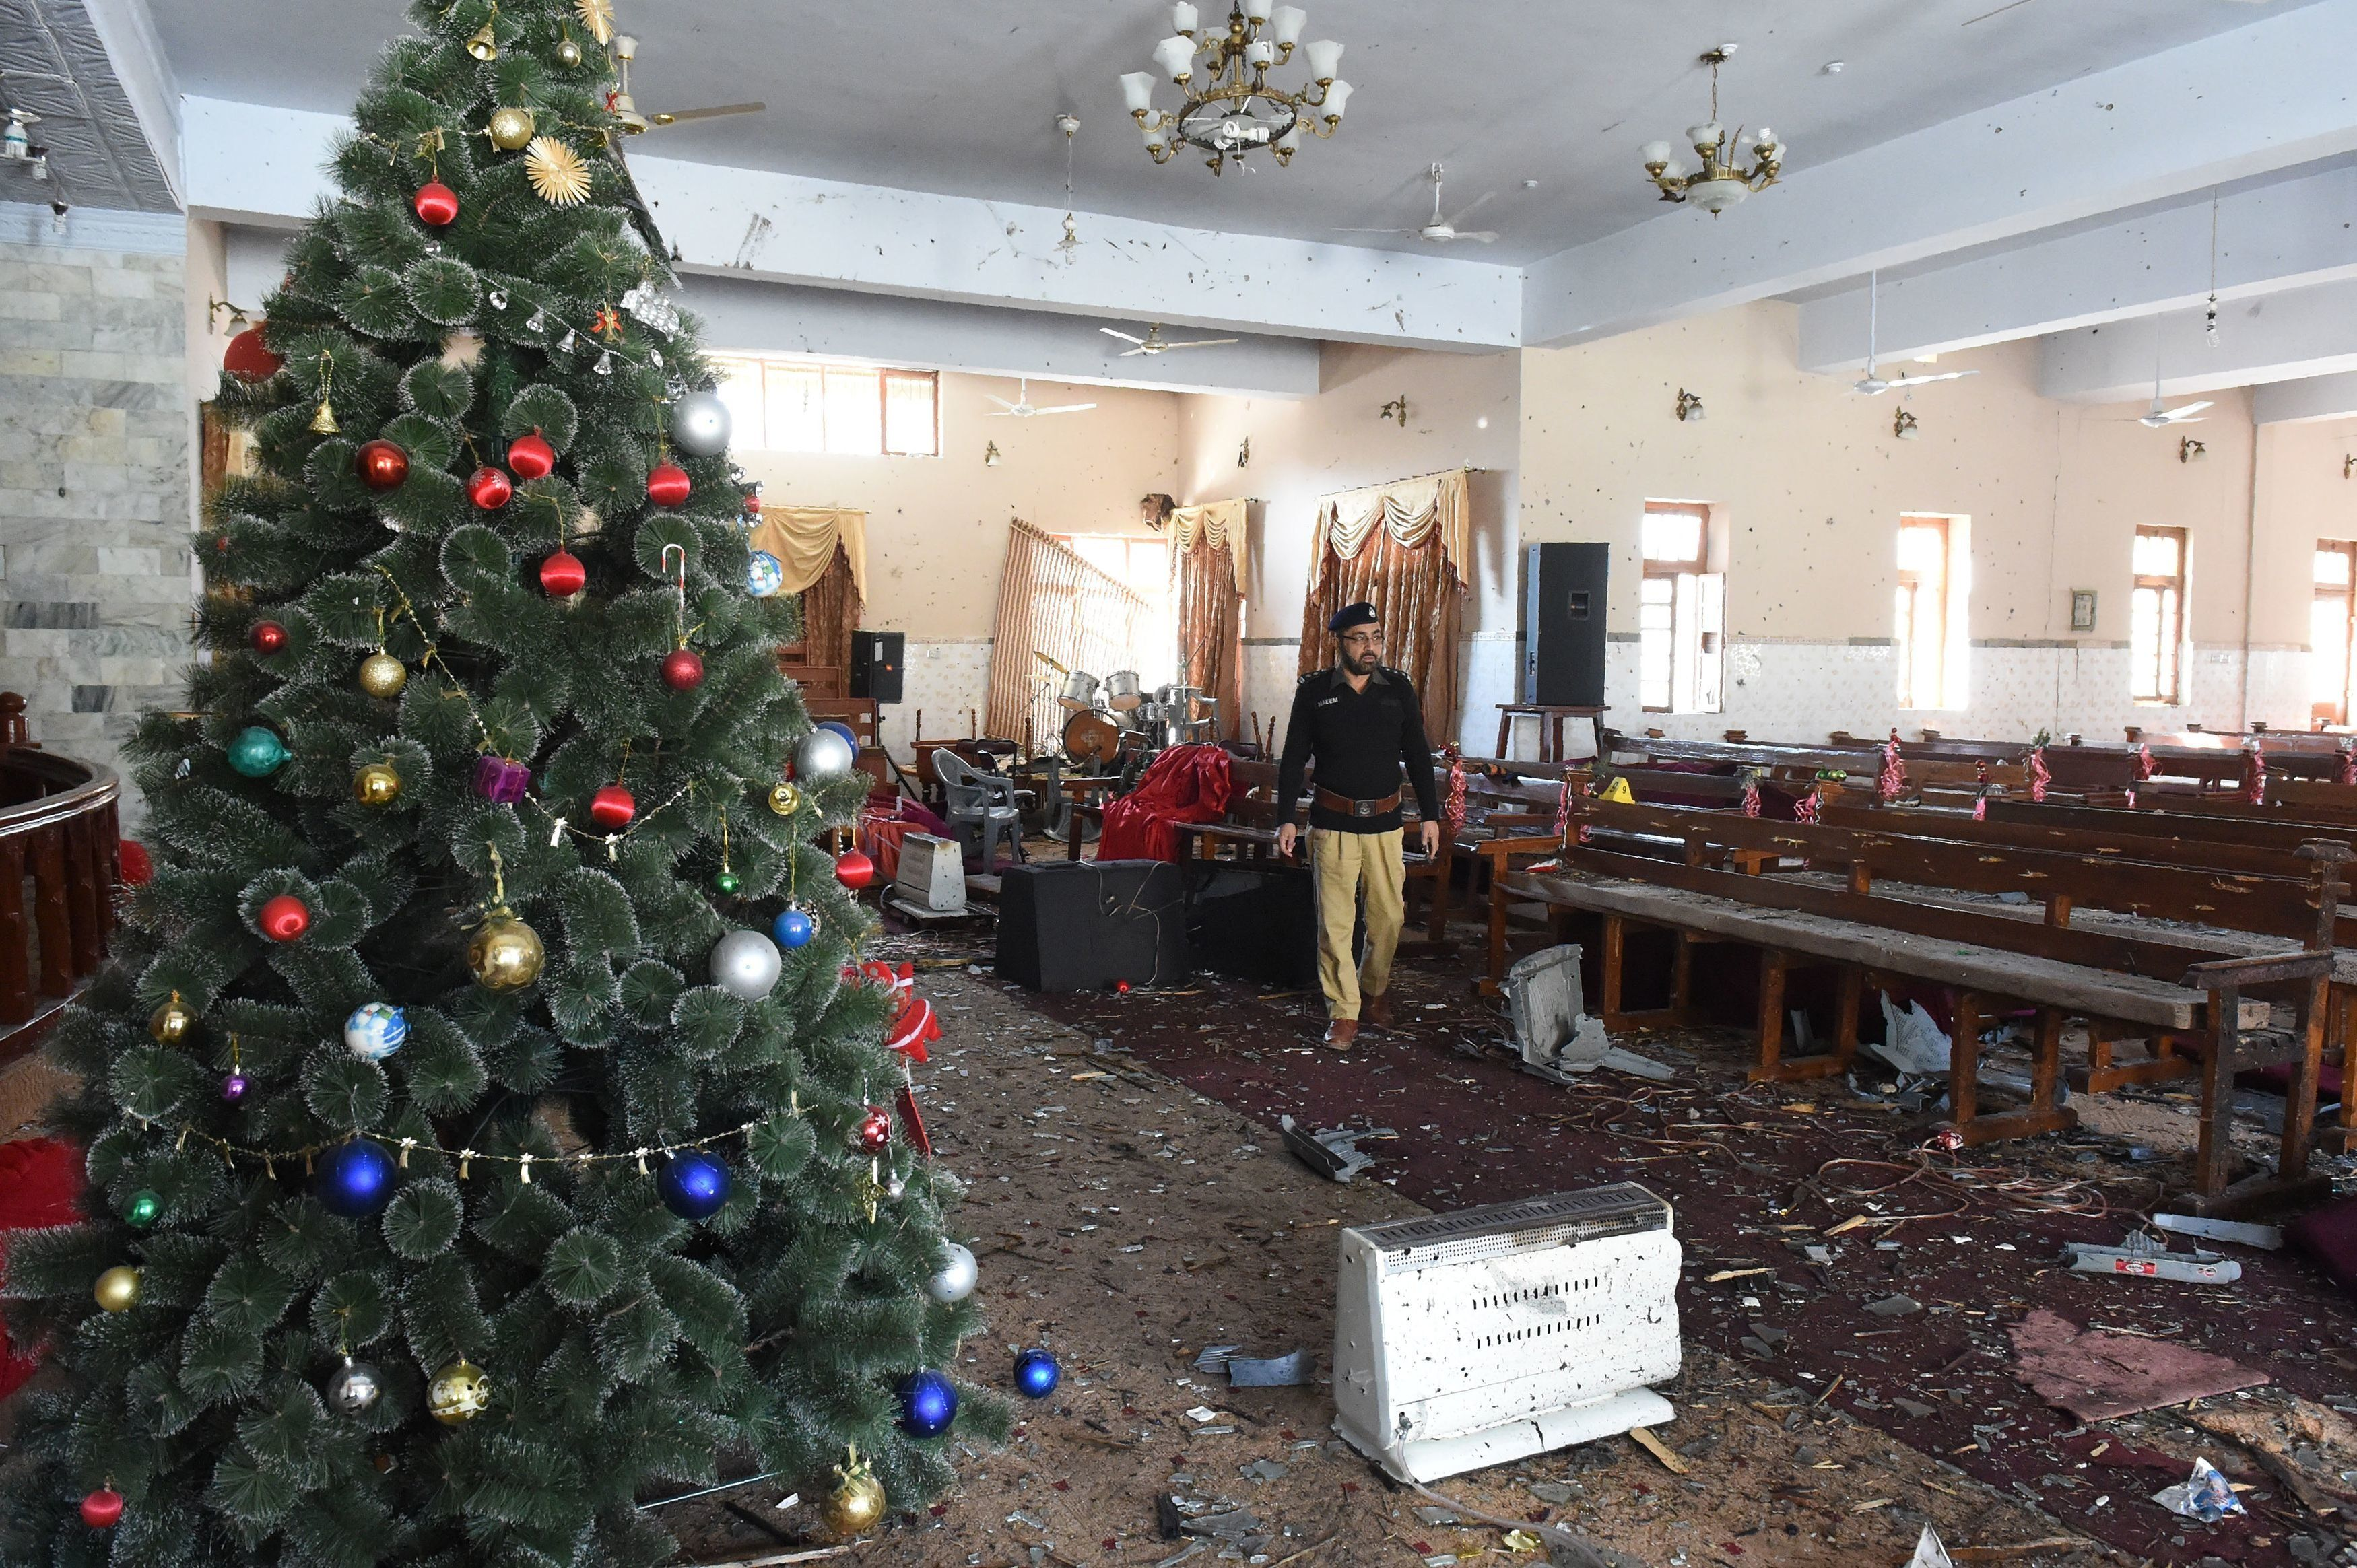 TOPSHOT - A Pakistani investigator collect evidence a day after a suicide attack in the Methodist Church in Quetta on December 18, 2017. A suicide bomb attack on a Pakistan church claimed by the Islamic State group killed at least eight people and wounded 30 during a service on December 17, just over a week before Christmas. / AFP PHOTO / BANARAS KHAN        (Photo credit should read BANARAS KHAN/AFP/Getty Images)